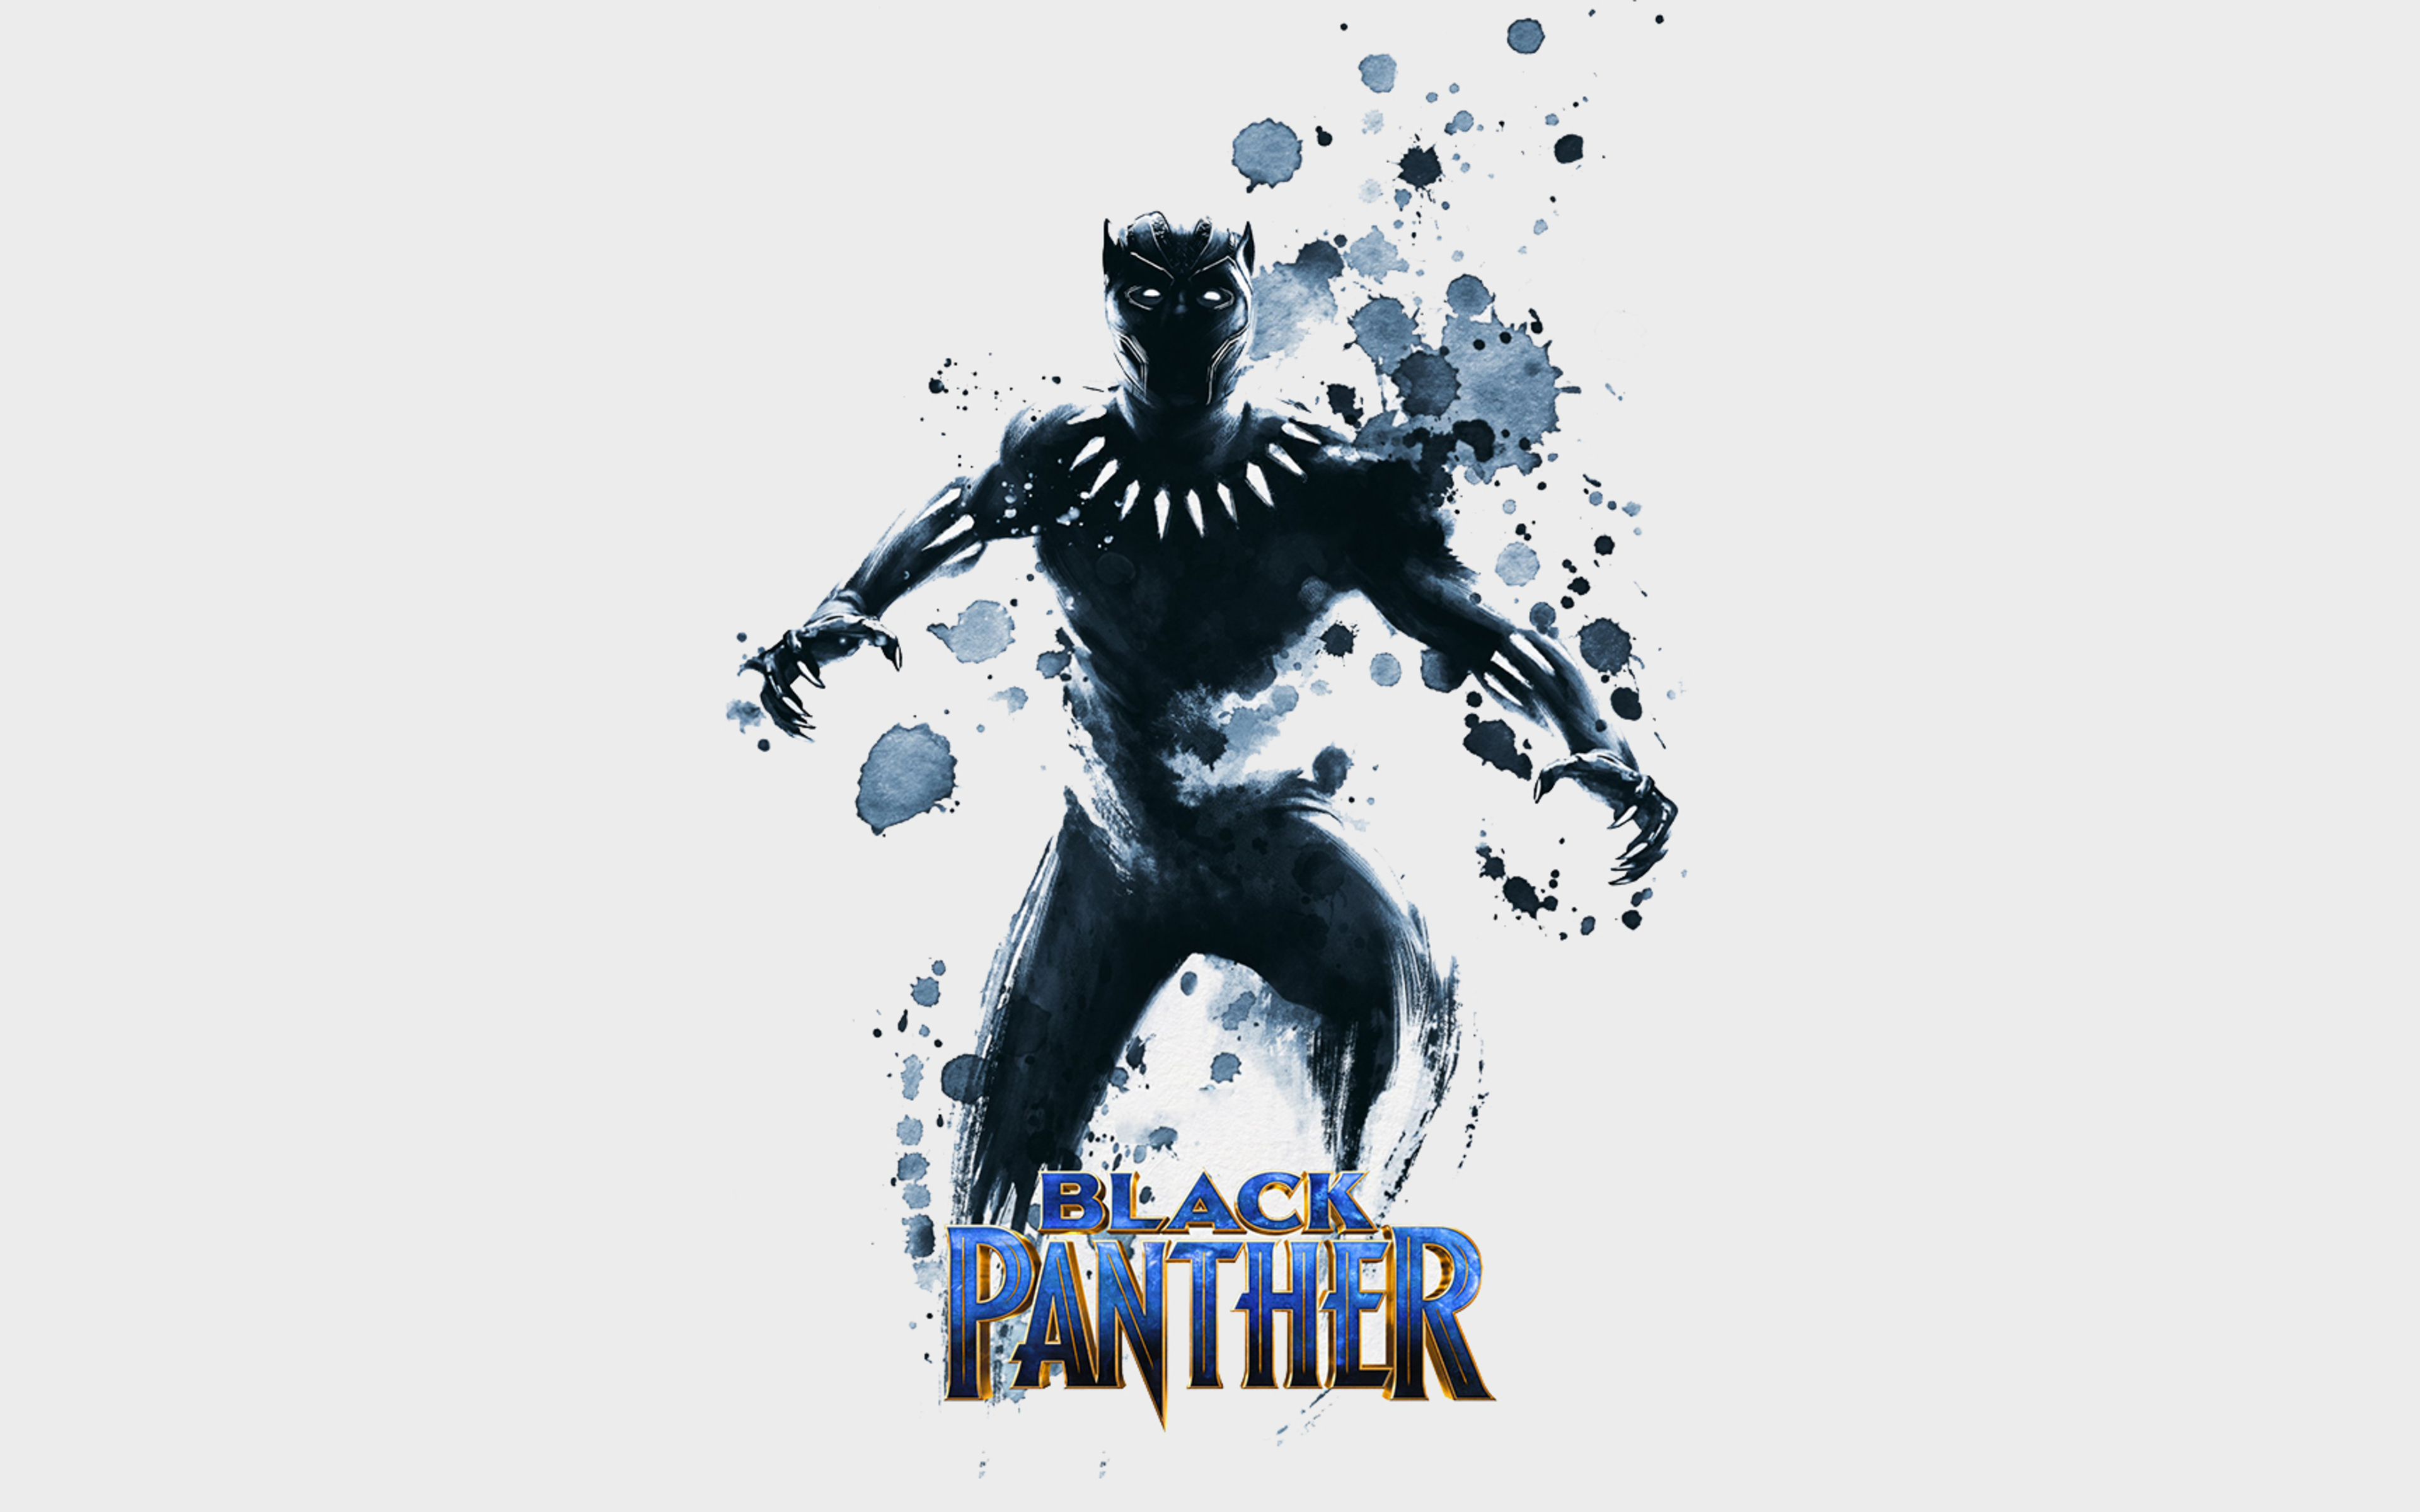 black-panther-movie-international-poster-7d.jpg